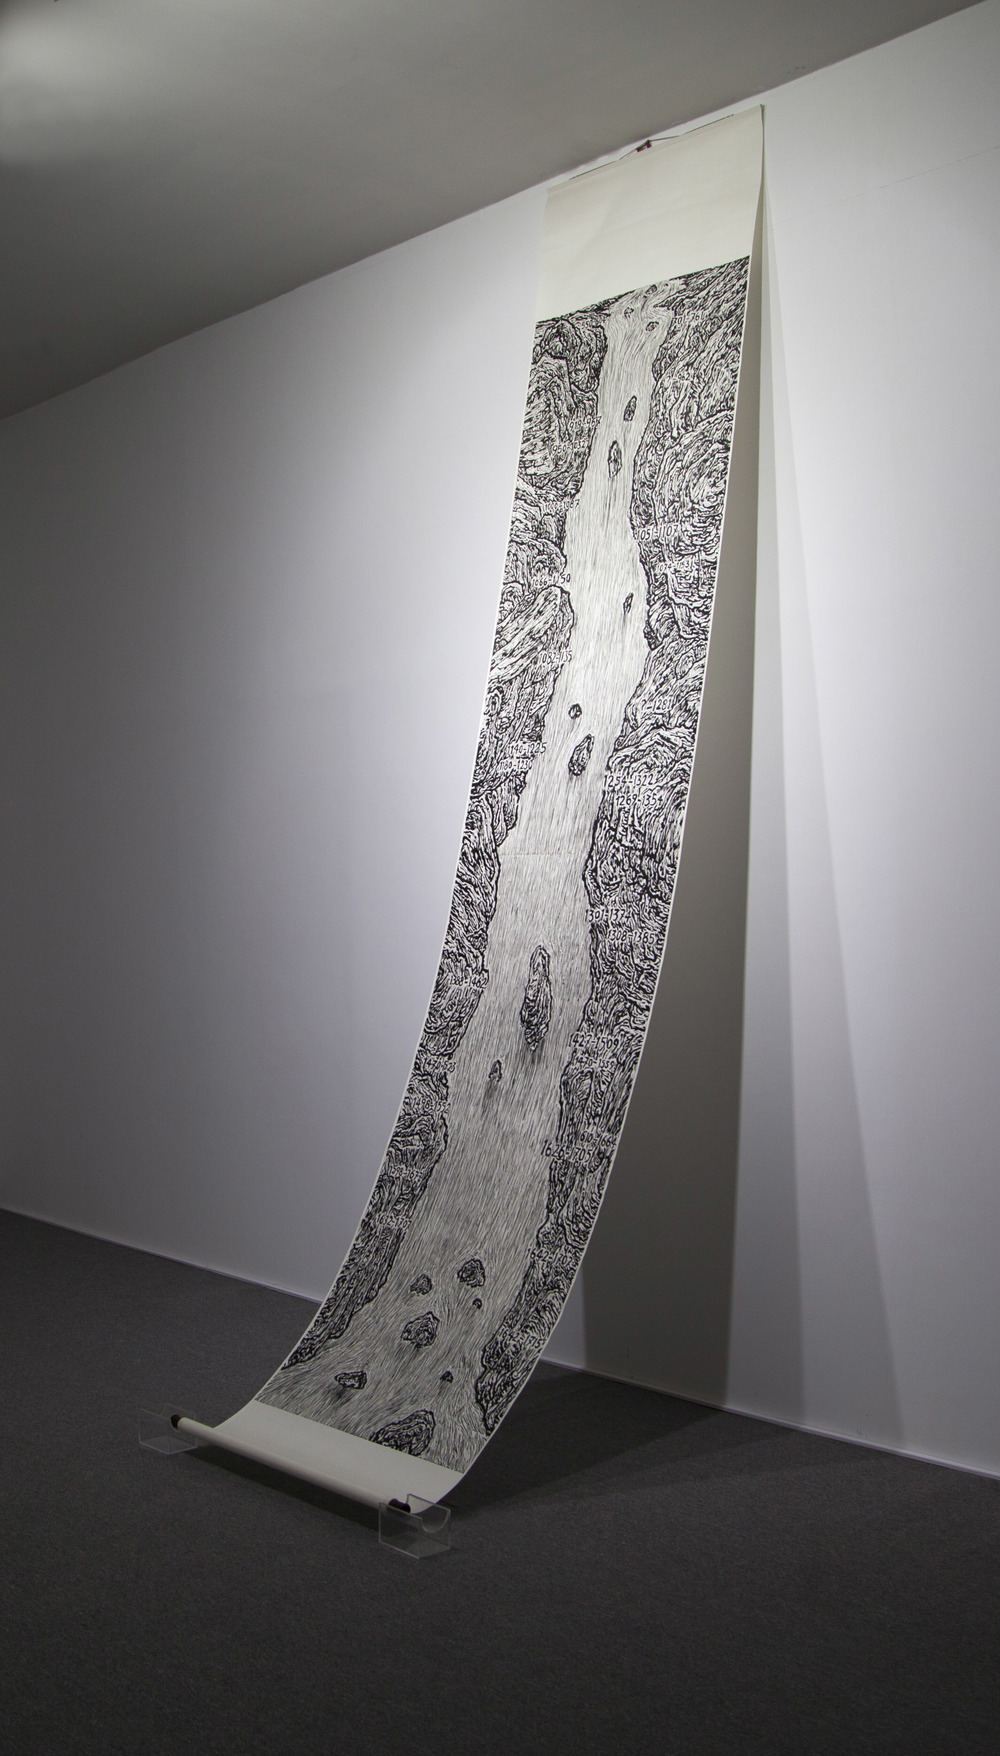 Ni Youyi 倪有鱼, View of History 历史观, 2014, Exhibition View 展览装置图